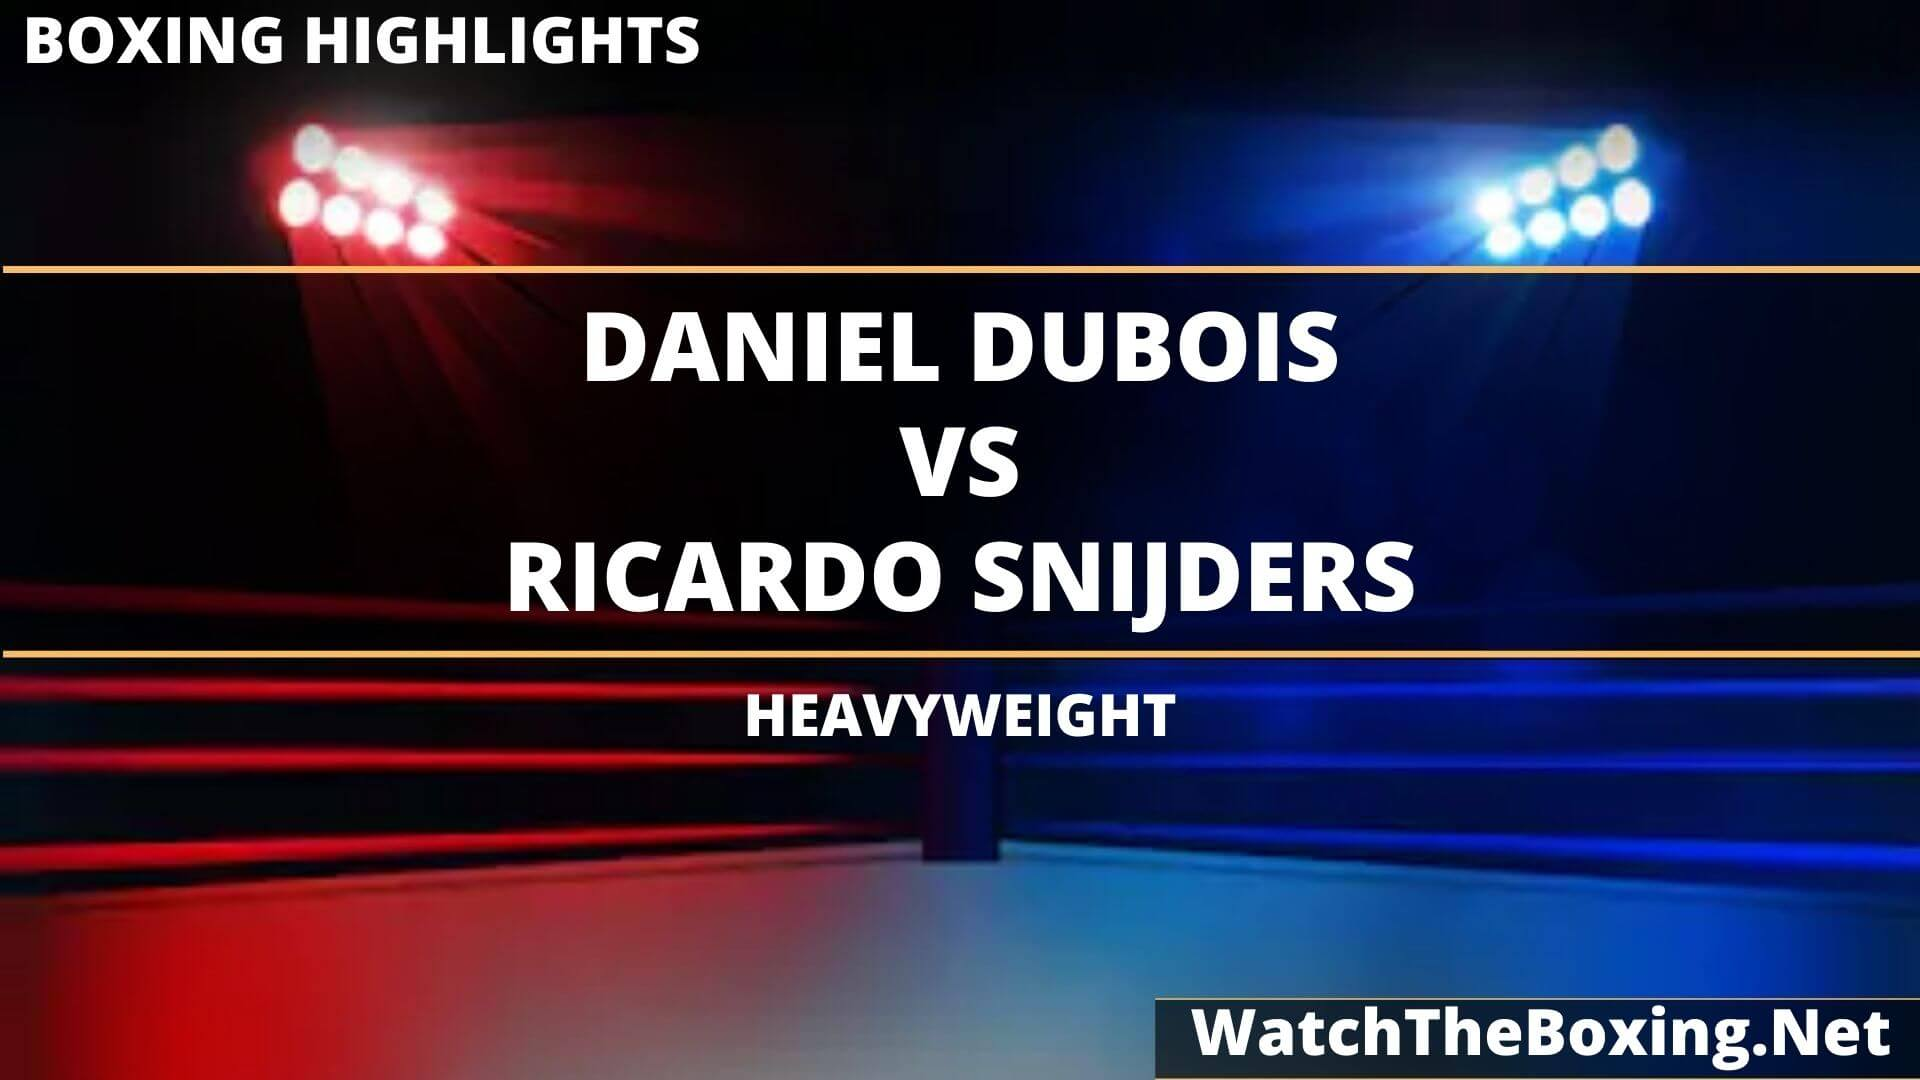 Daniel Dubois Vs Ricardo Snijders Highlights 2020